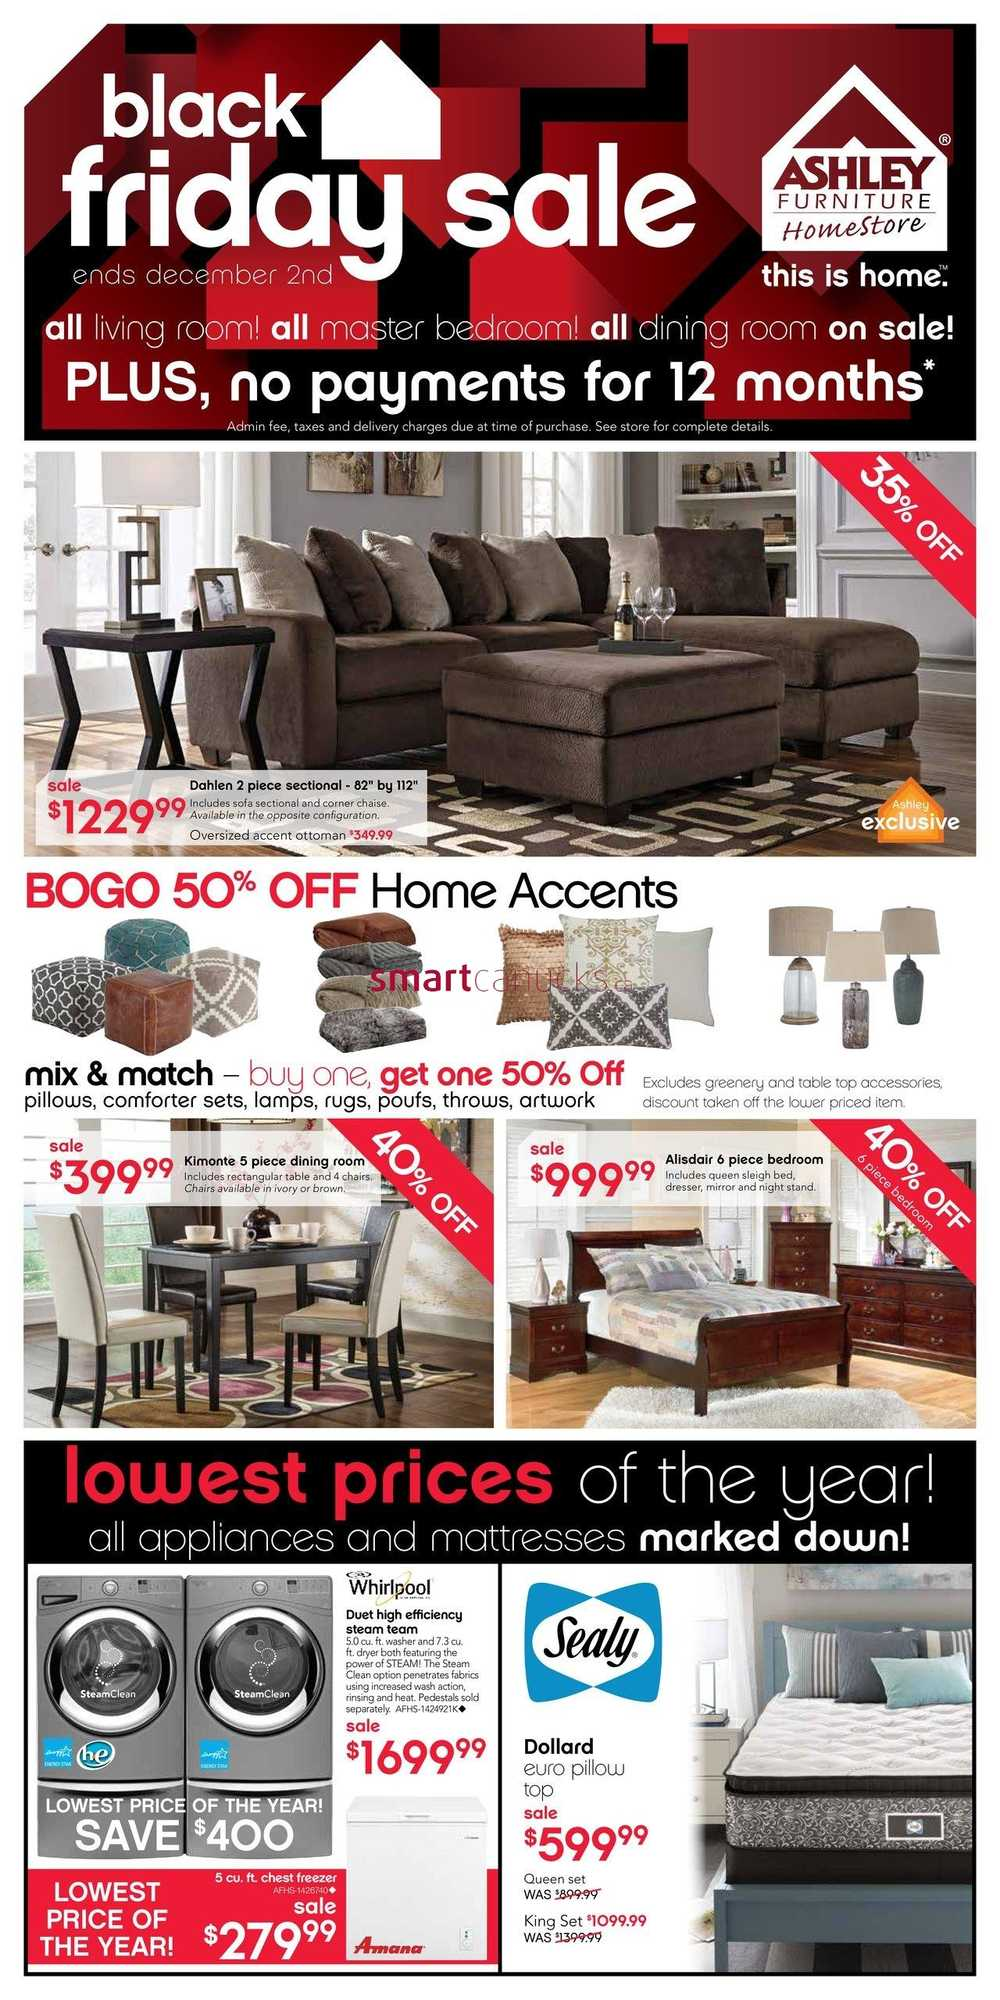 Ashley furniture home store west black friday flyer for Furniture black friday